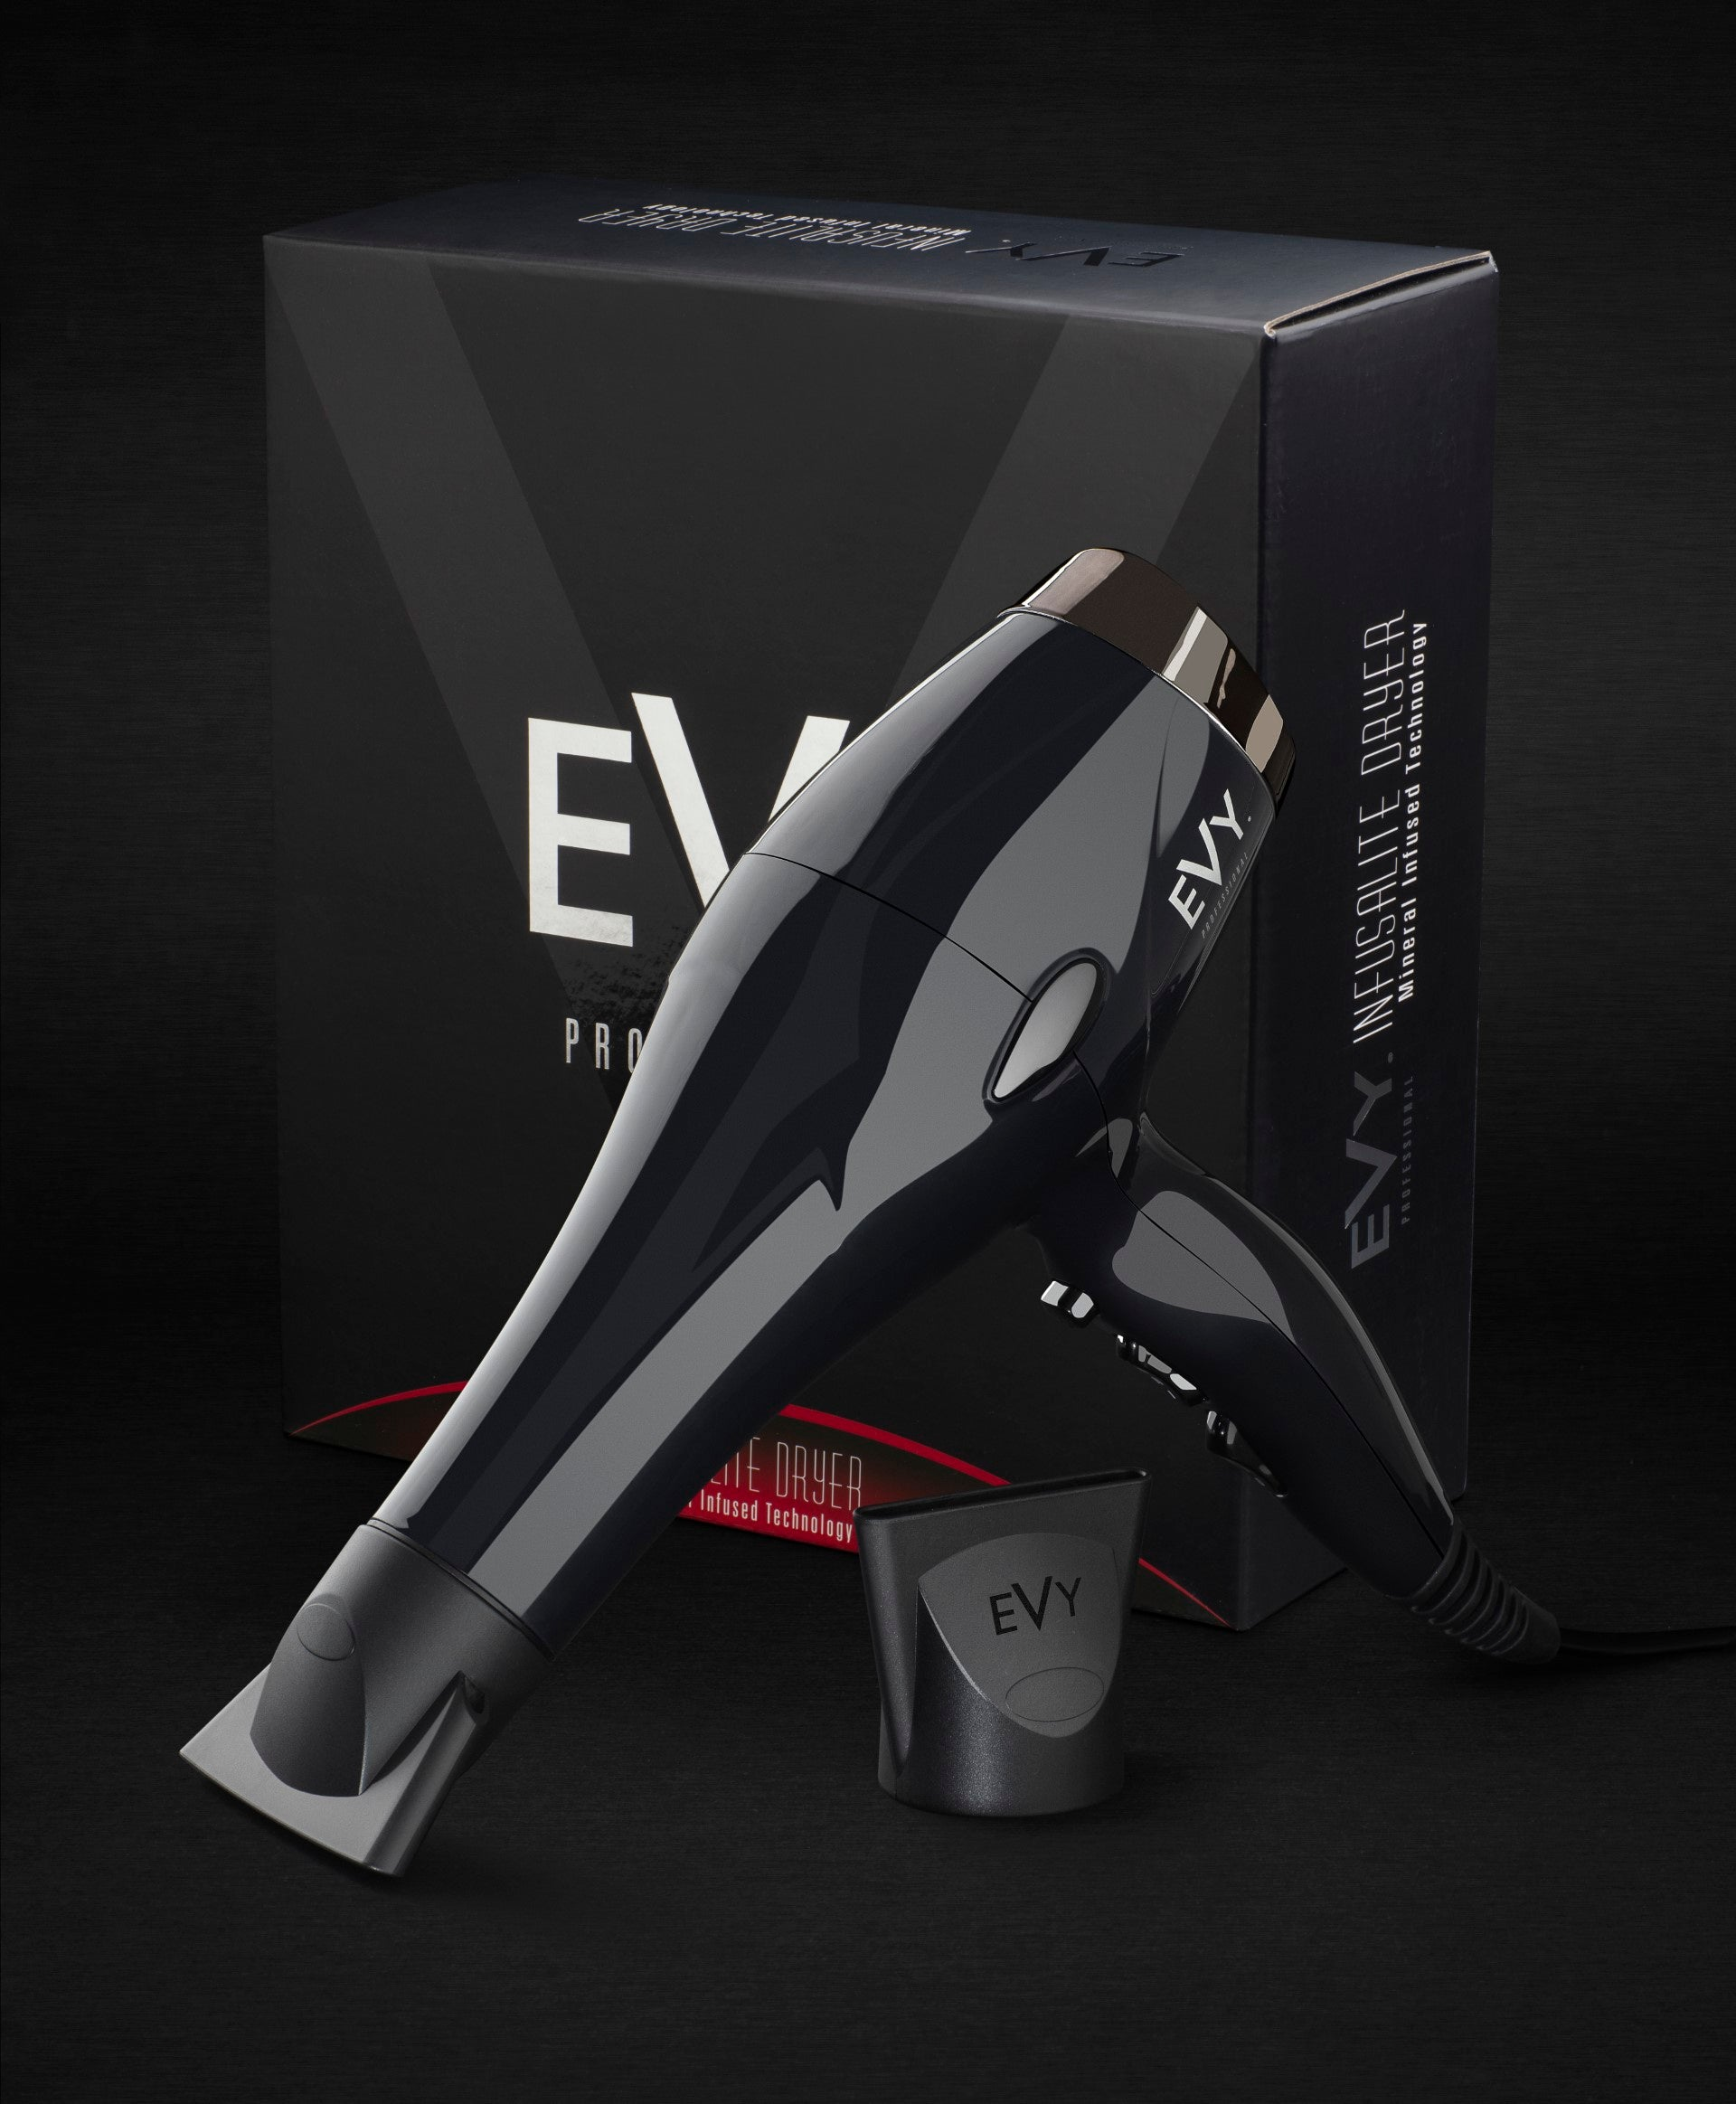 EVY Professional Infusalite Dryer